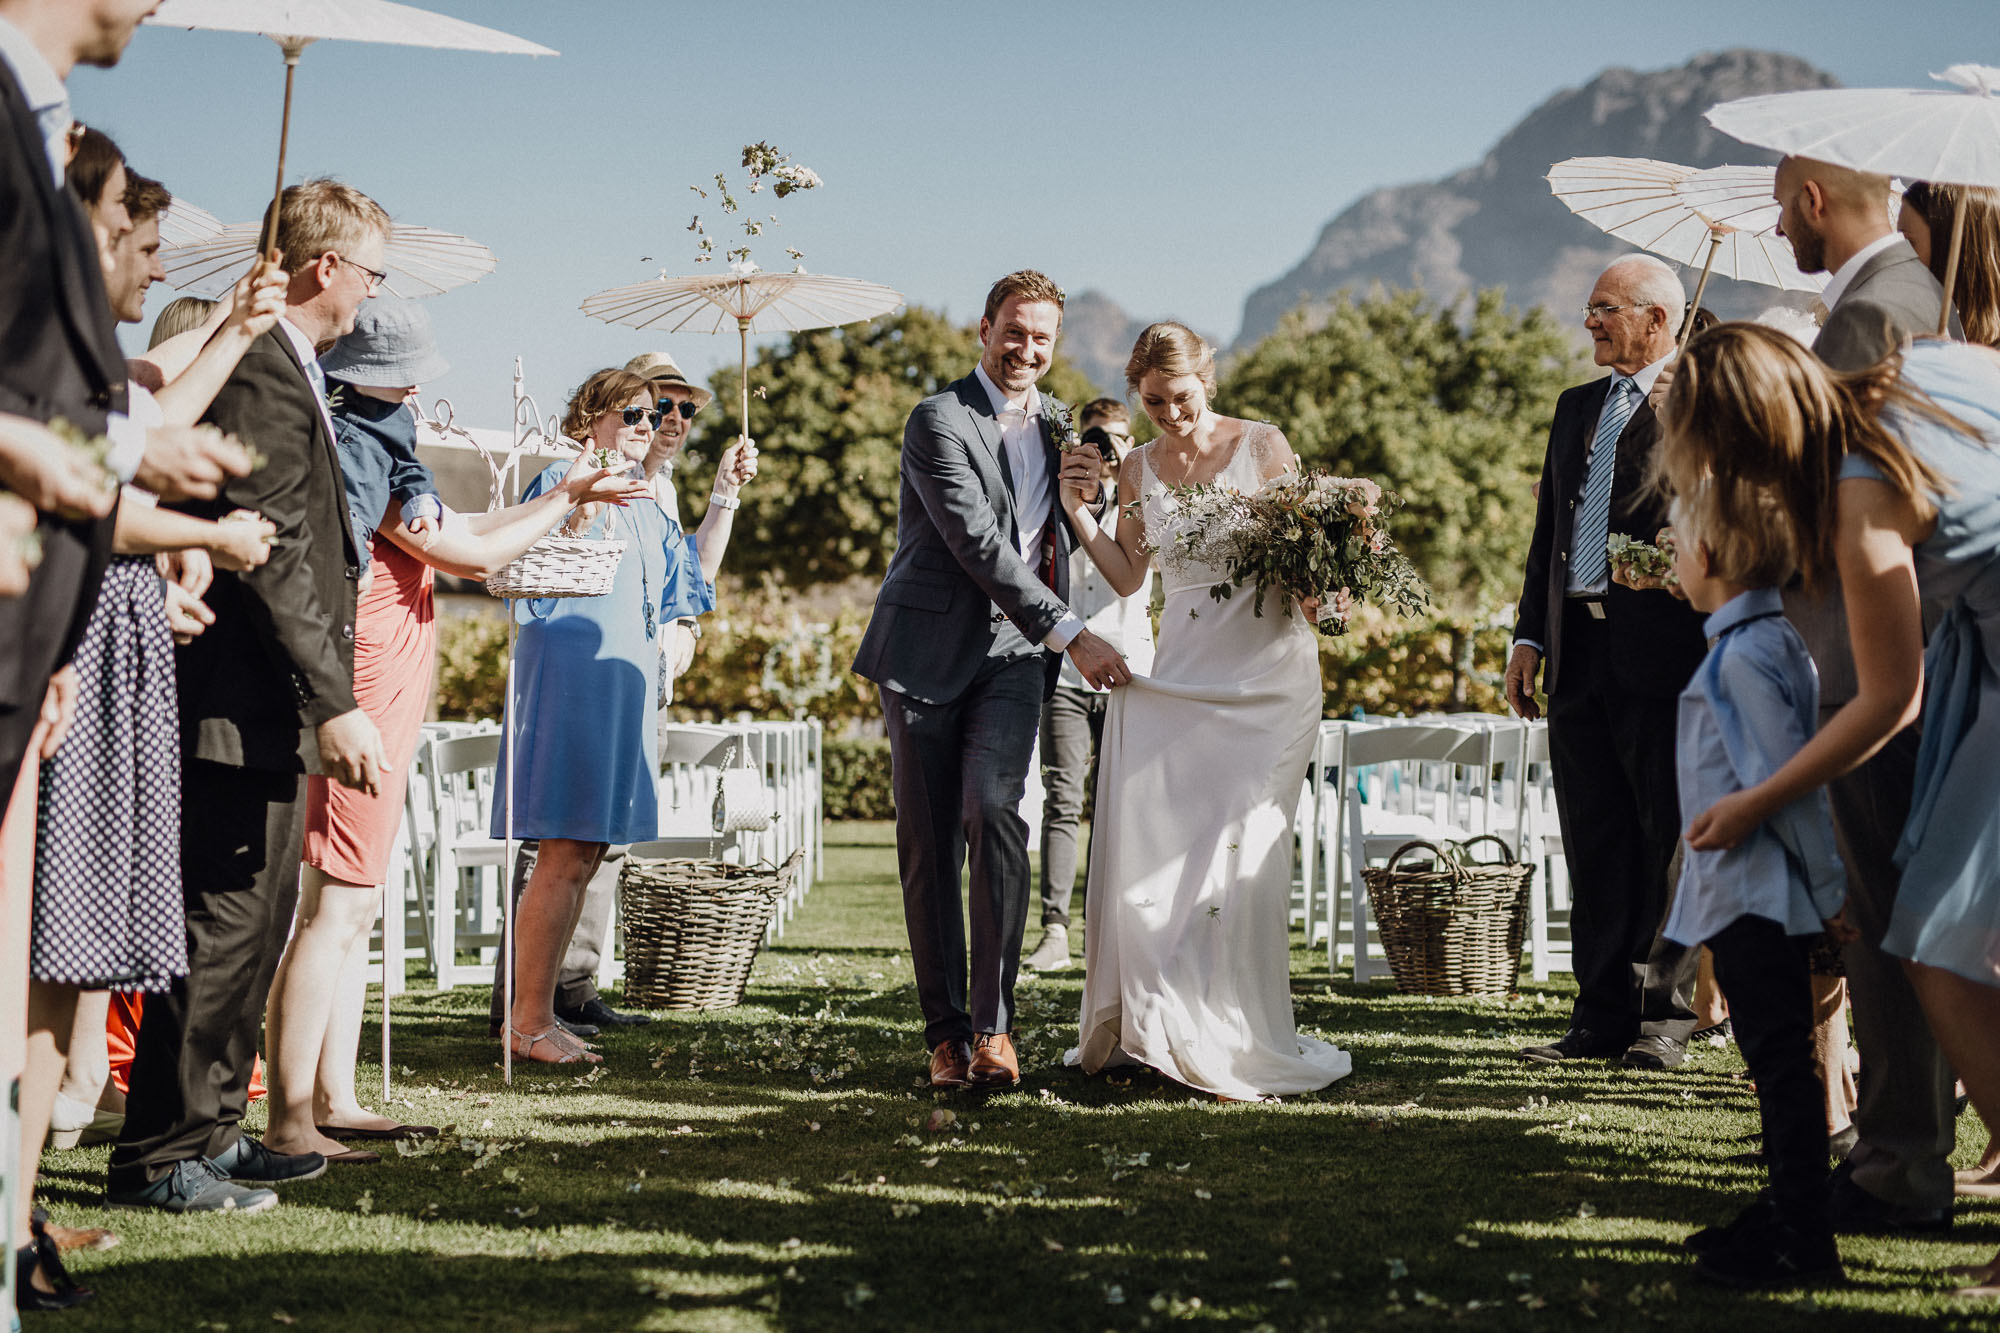 raissa simon photography destination wedding capetown vrede en lust wine estate 074 - Nienke + Tim